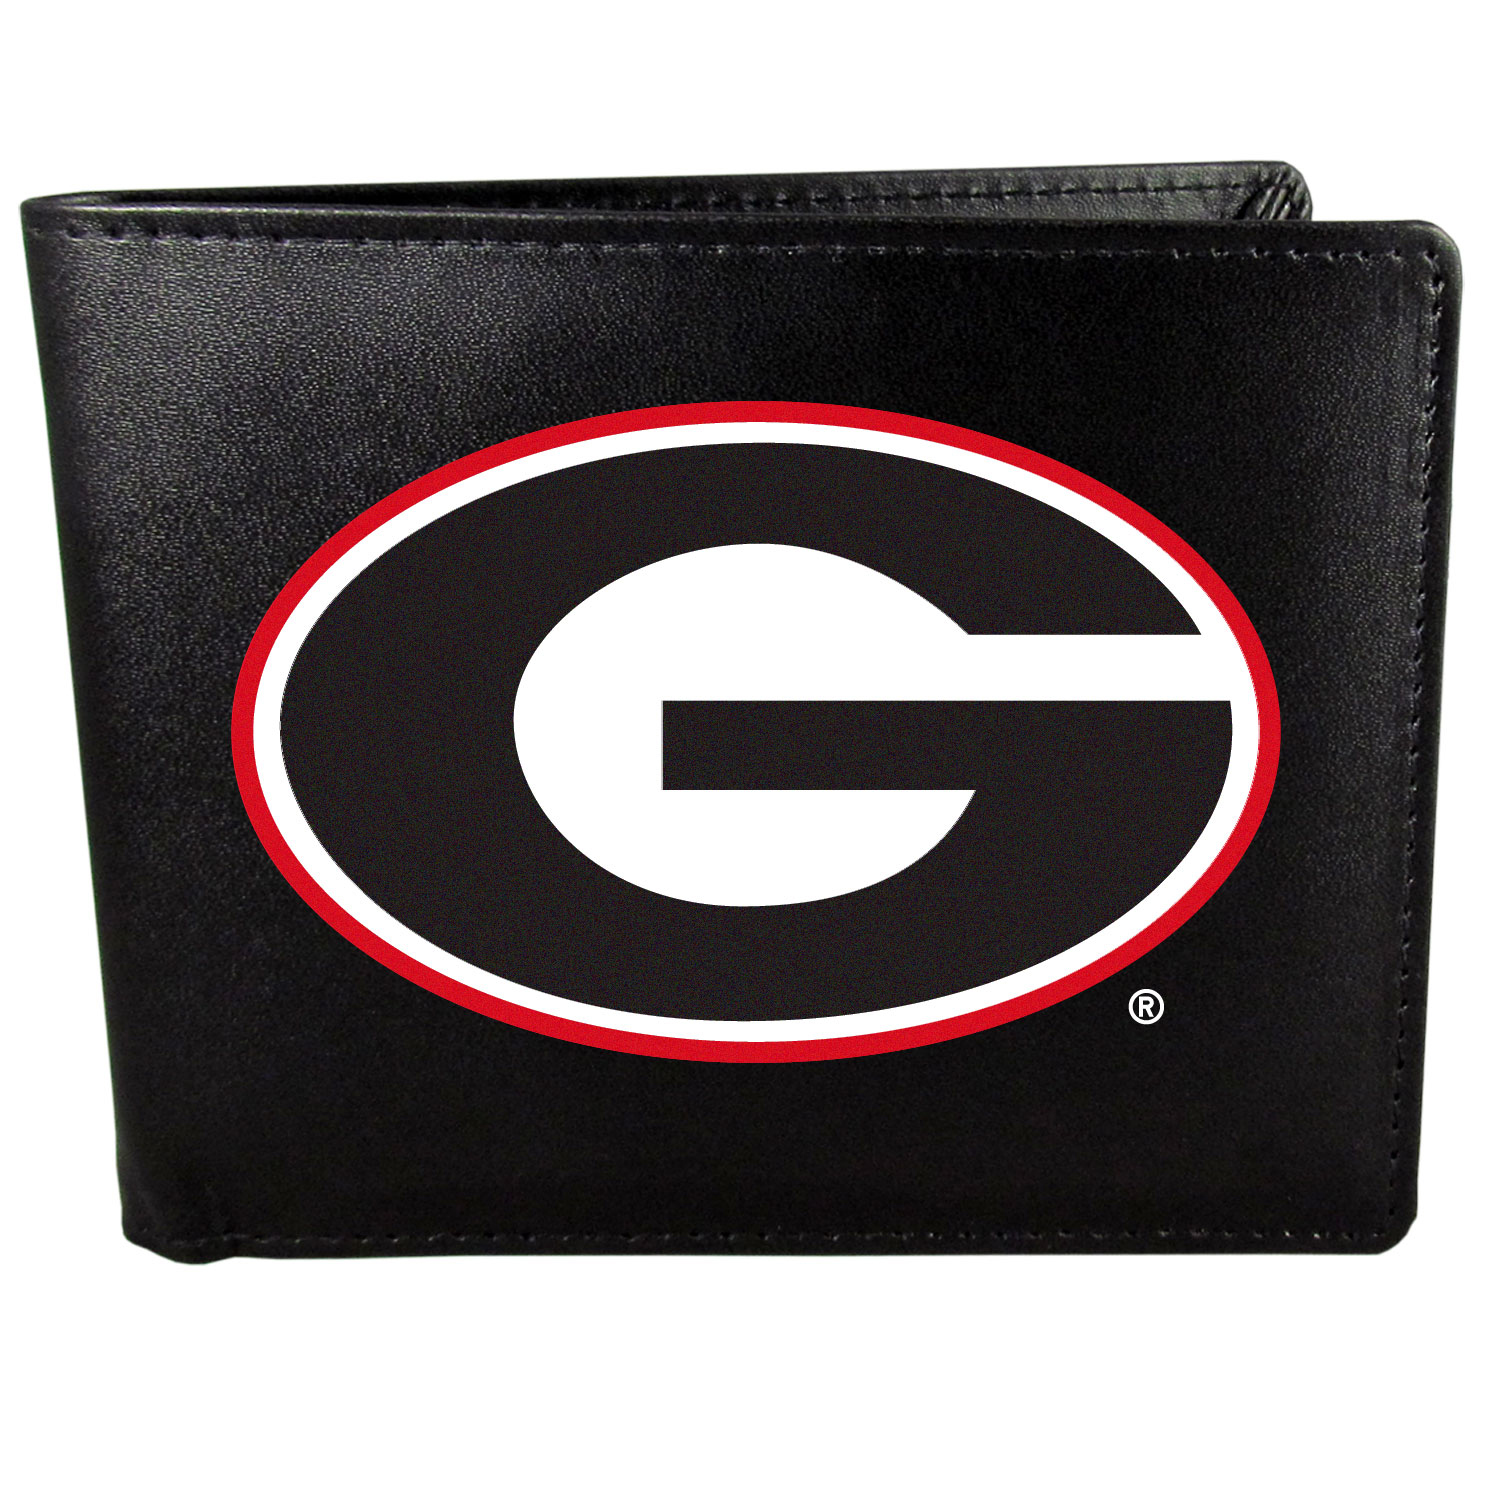 Georgia Bulldogs Leather Bi-fold Wallet, Large Logo - Our classic fine leather bi-fold wallet is meticulously crafted with genuine leather that will age beautifully so you will have a quality wallet for years to come. The wallet opens to a large, billfold pocket and numerous credit card slots and has a convenient windowed ID slot. The front of the wallet features an extra large Georgia Bulldogs printed logo.